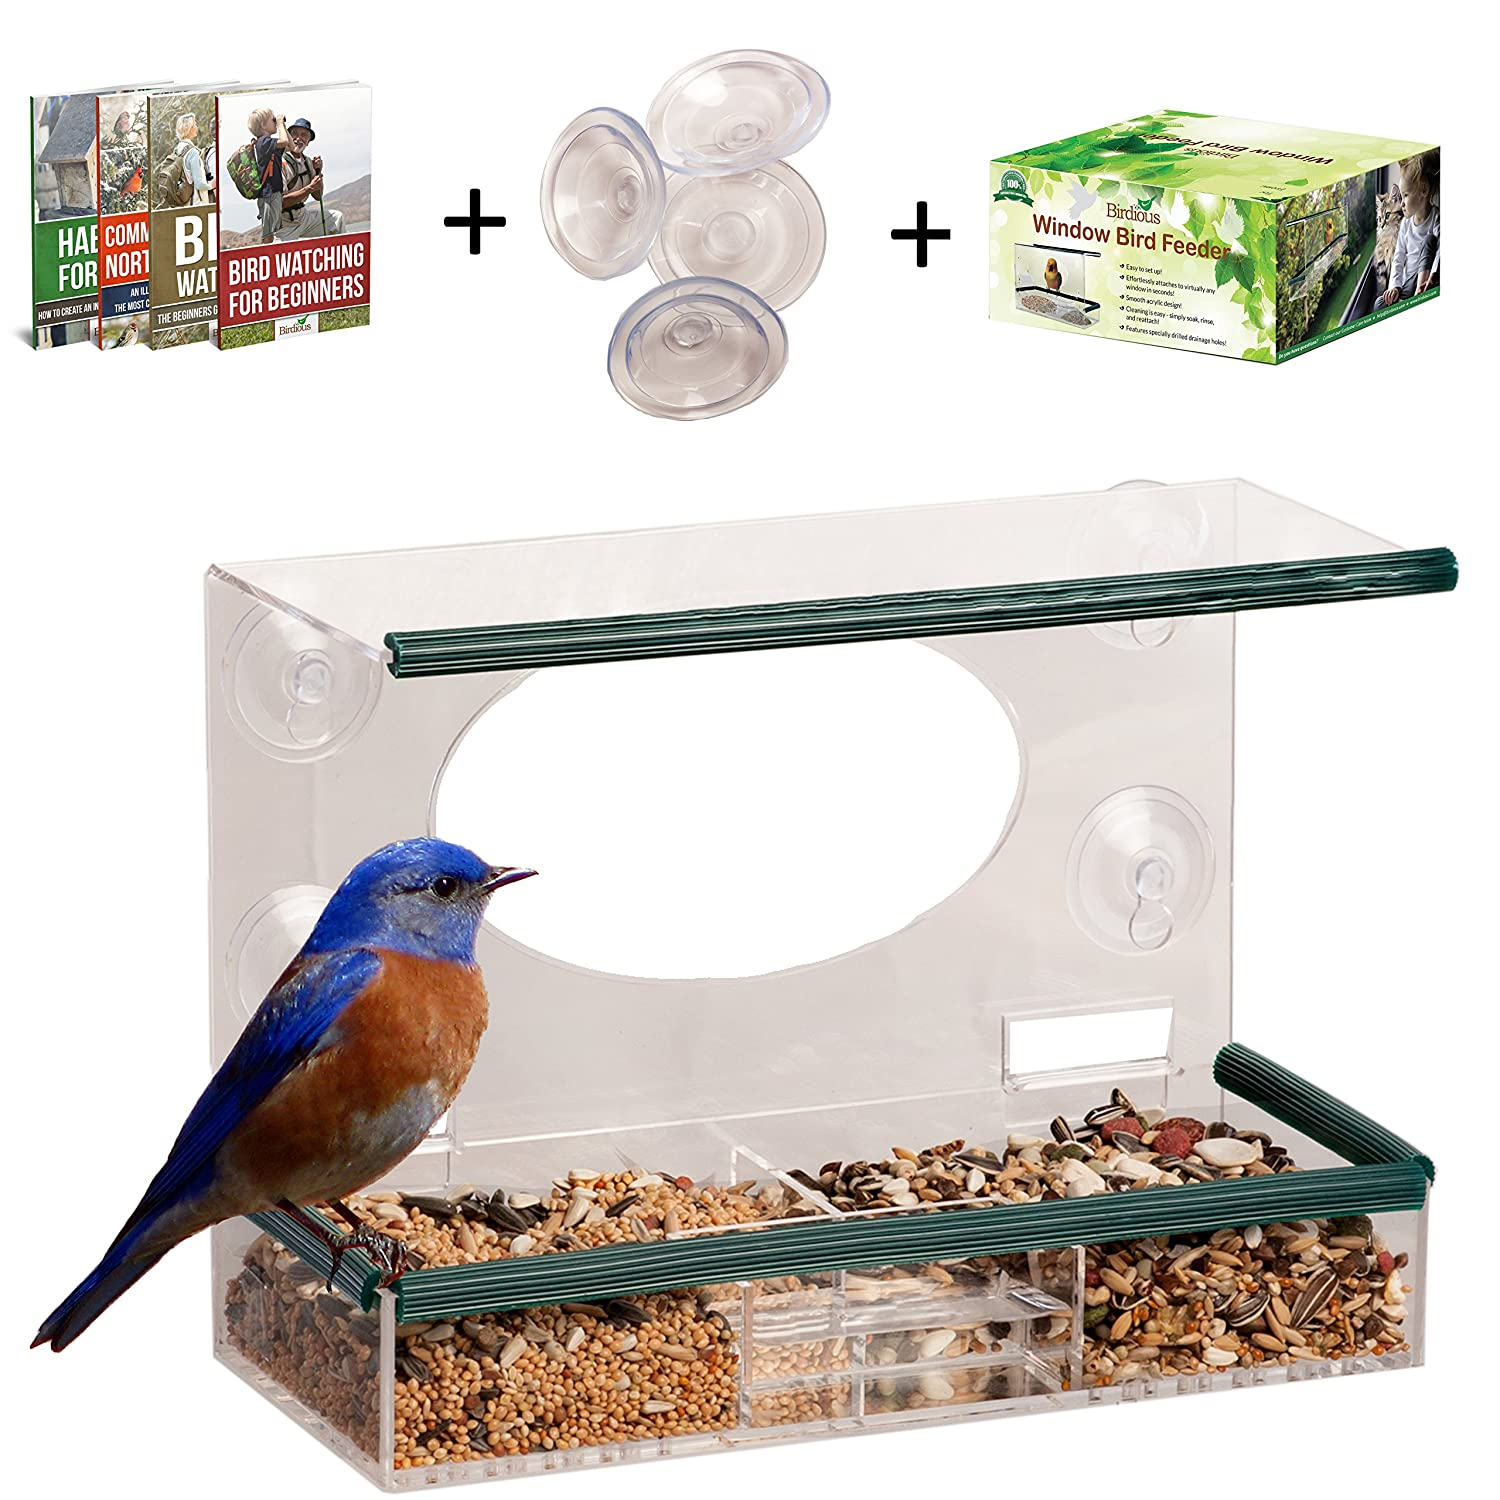 Window bird house - Amazon Com Clear Window Bird Feeder Enjoy Unique Watch Small Large Birds See Through Birdhouse Mounted By 4 Strong Suction Cups Squirrel Proof With